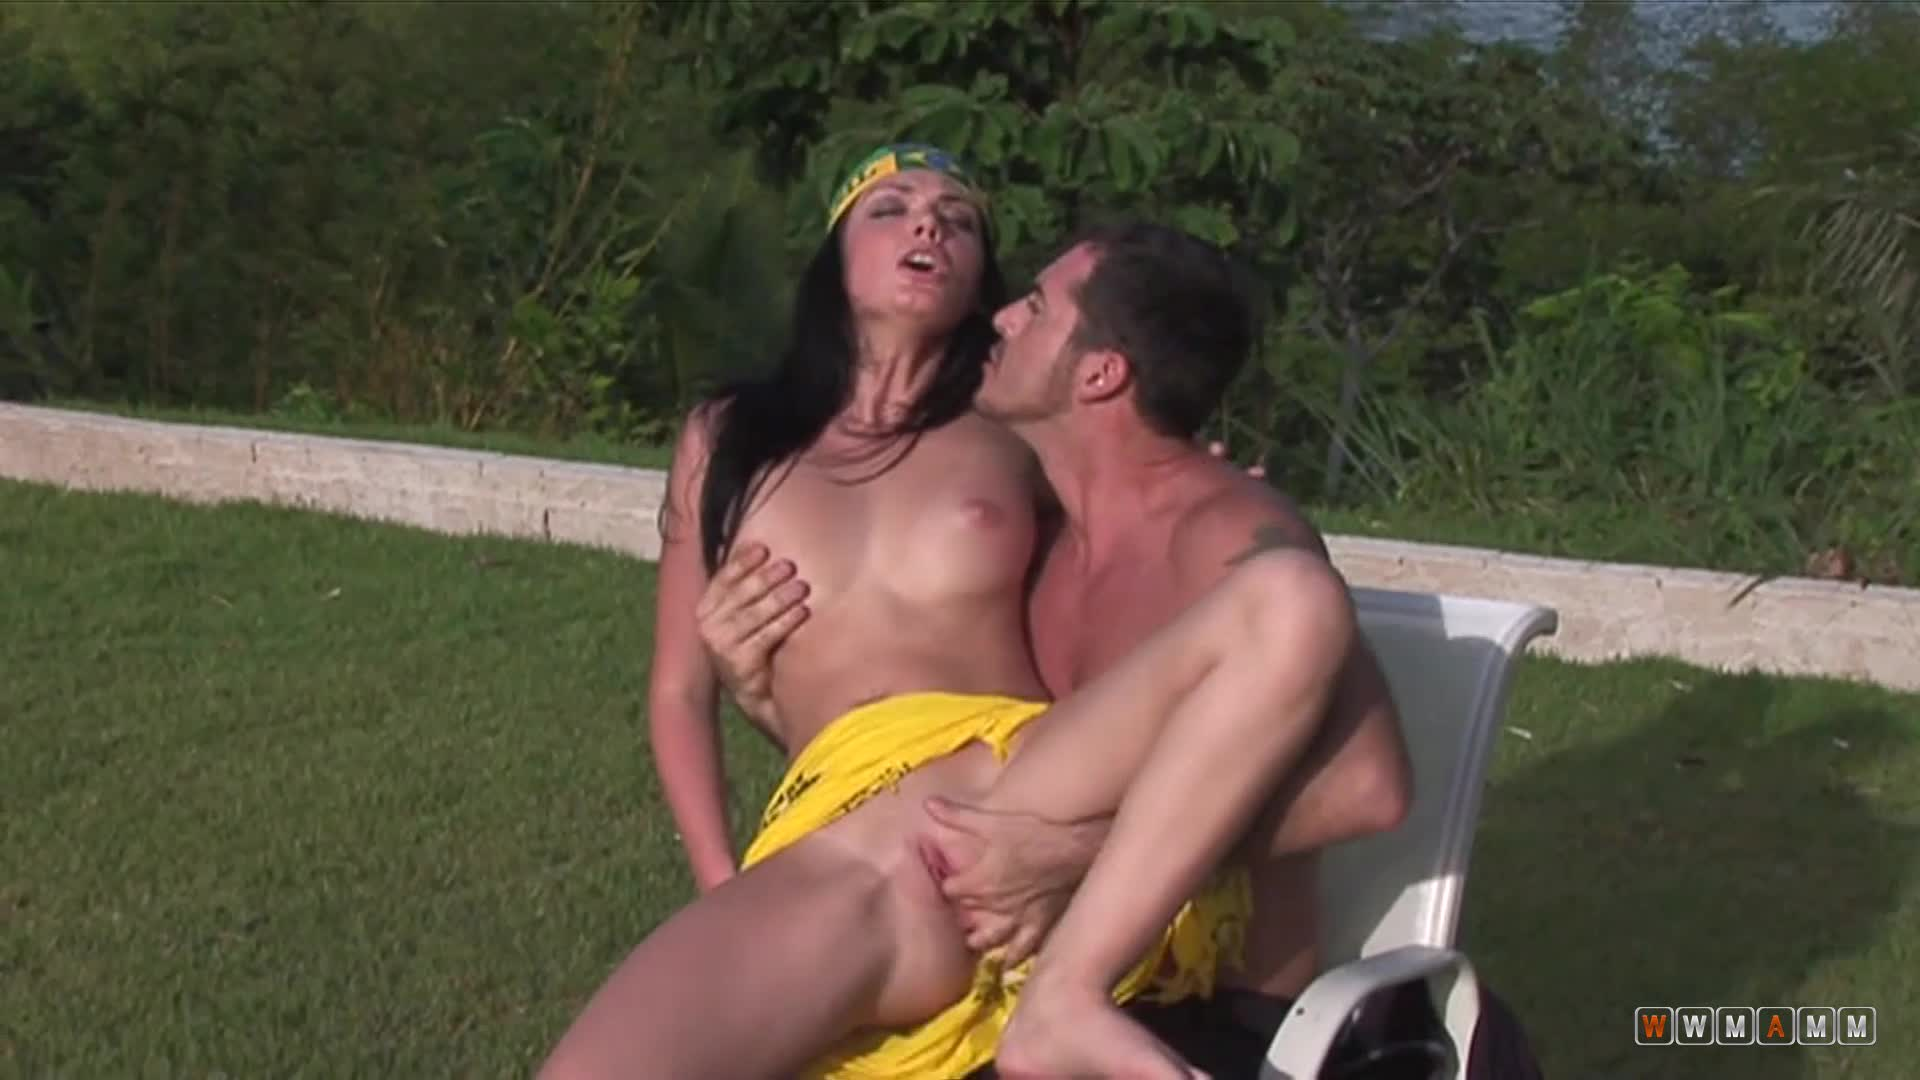 Hot And Horny Brazilian Roxy Visited Her Husband For Some Fun